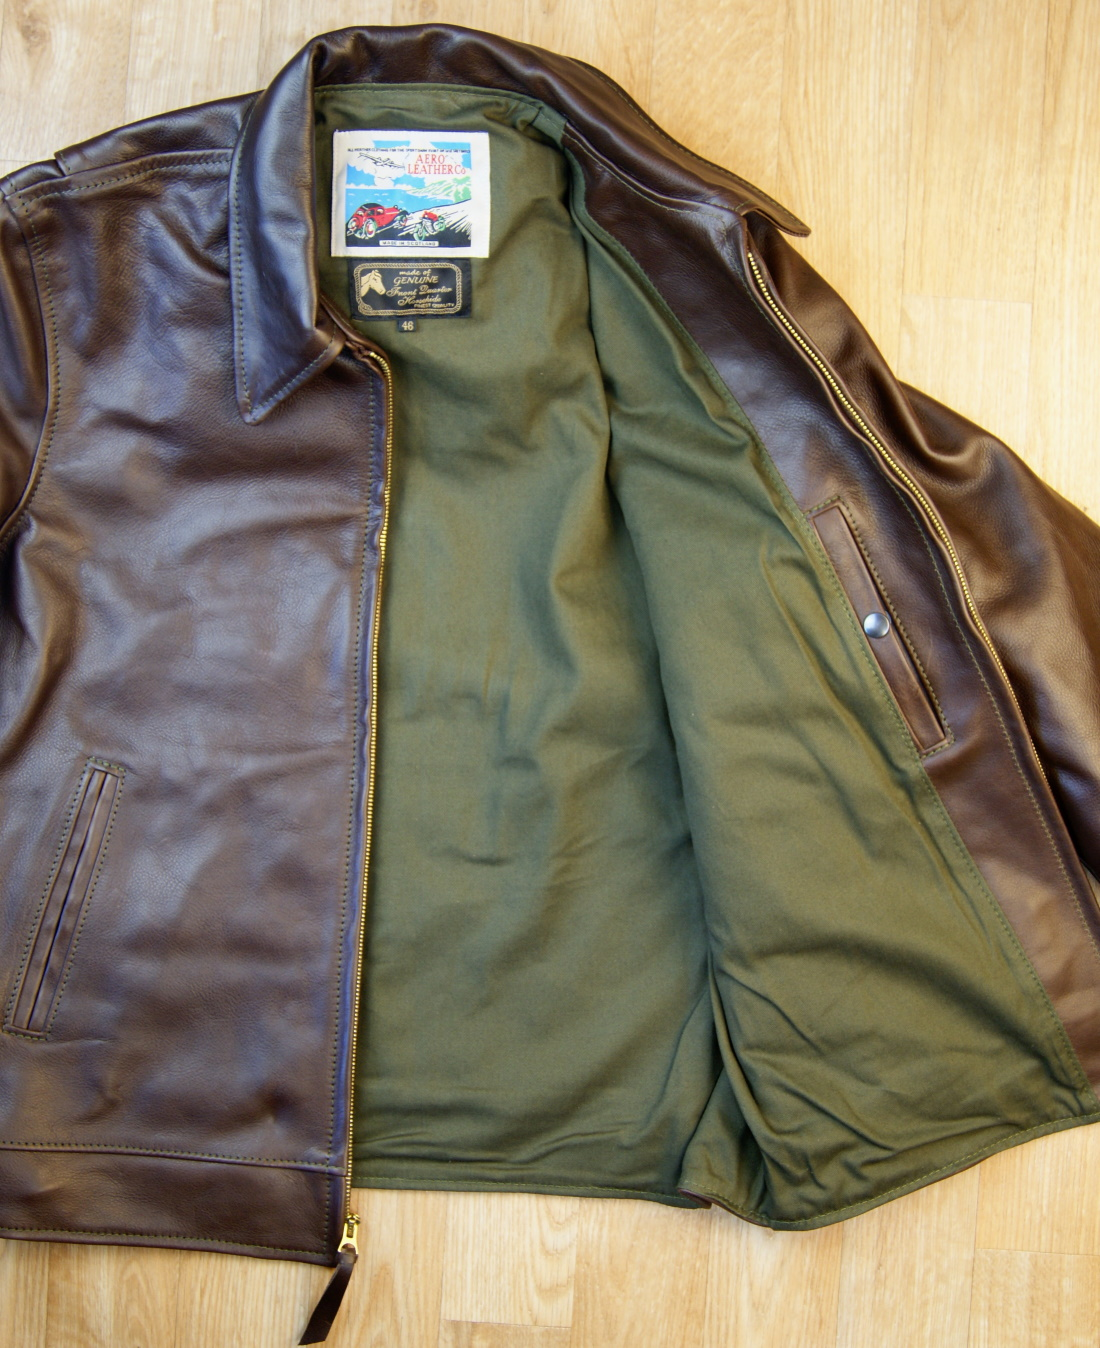 Aero Premier Highwayman Seal Vicenza Horsehide DWM olive cotton drill.jpg